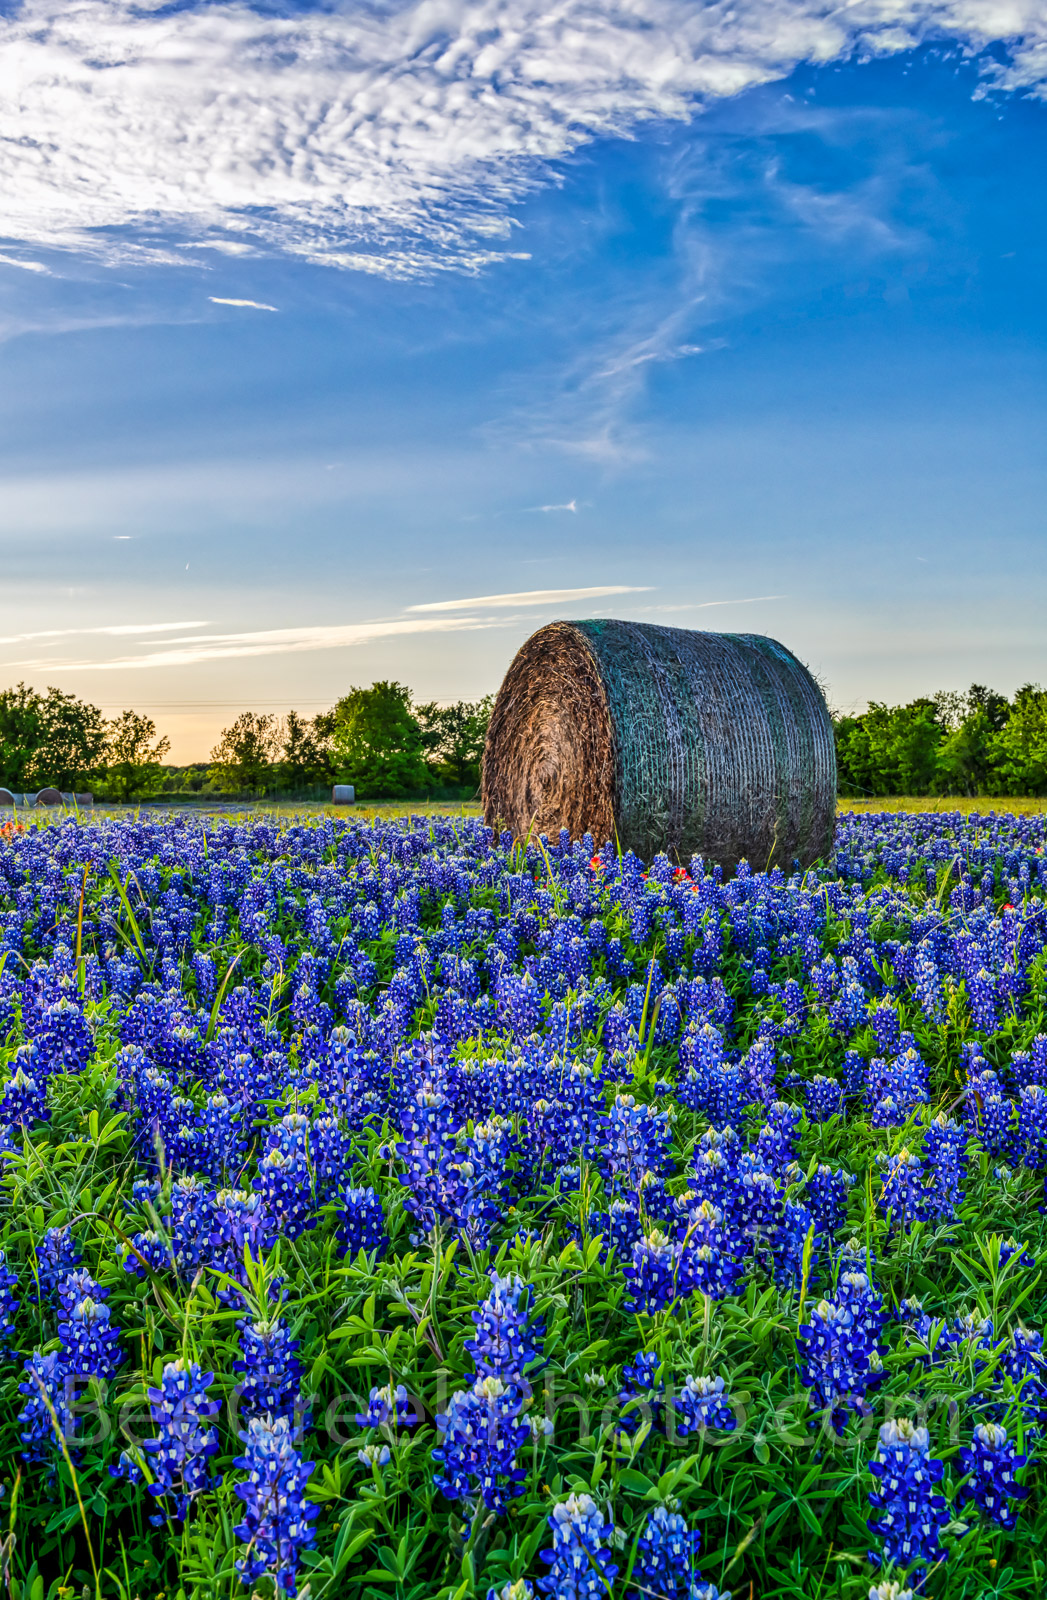 Texas bluebonnets, hay bales, vertical format, lovely bluebonnets, rural, wildflowers, field,Texas Bluebonnets with Hay bales, farm, , photo